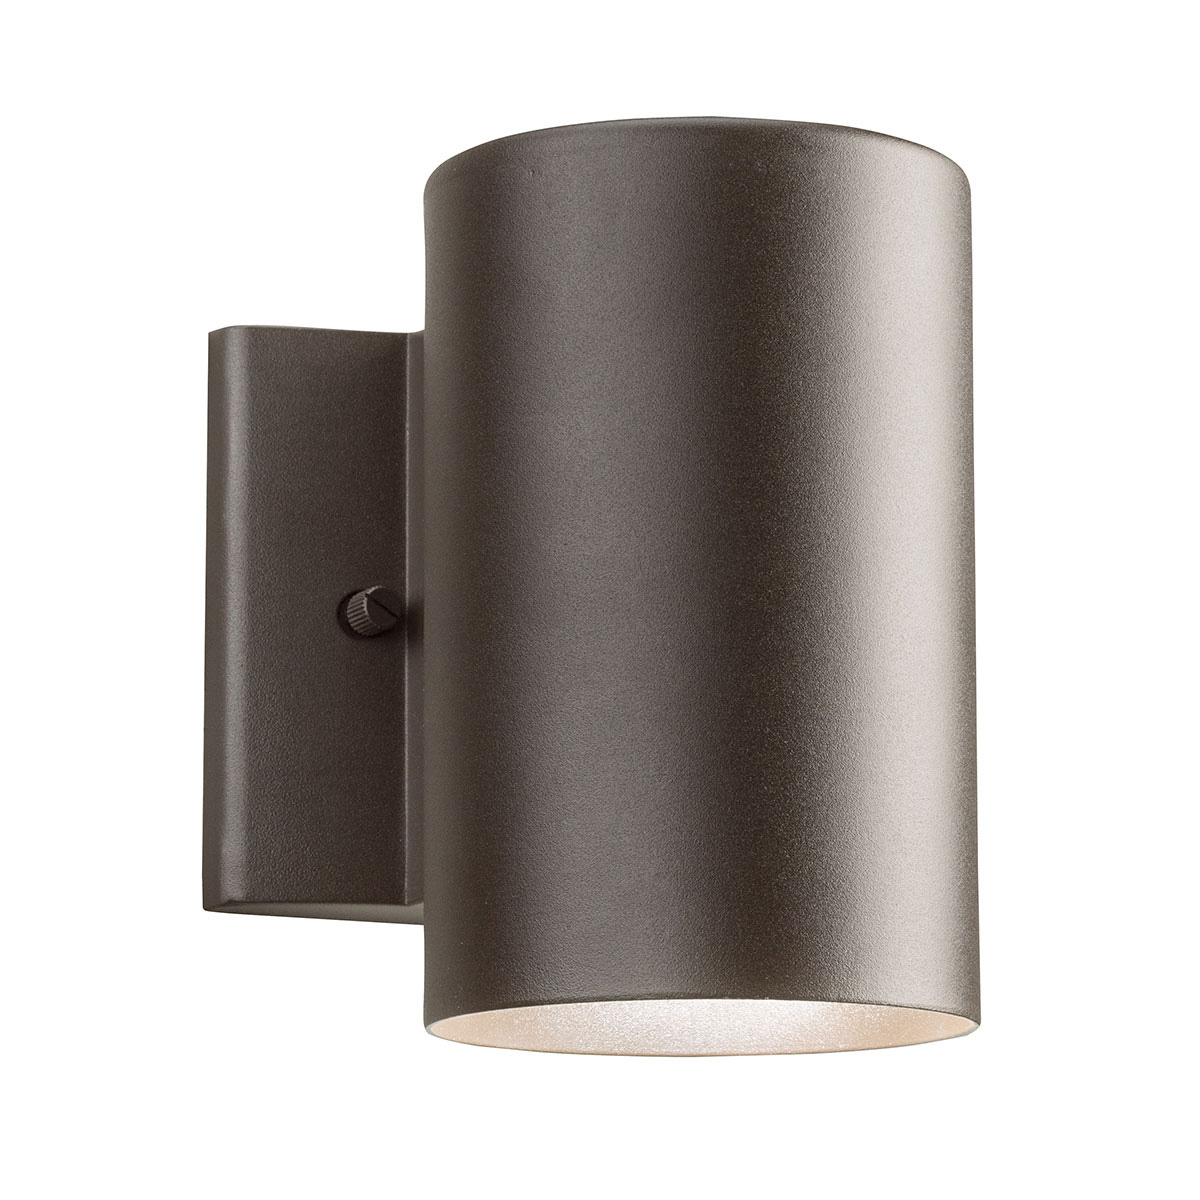 Cylinder Led Downlight Wall Sconce By Kichler